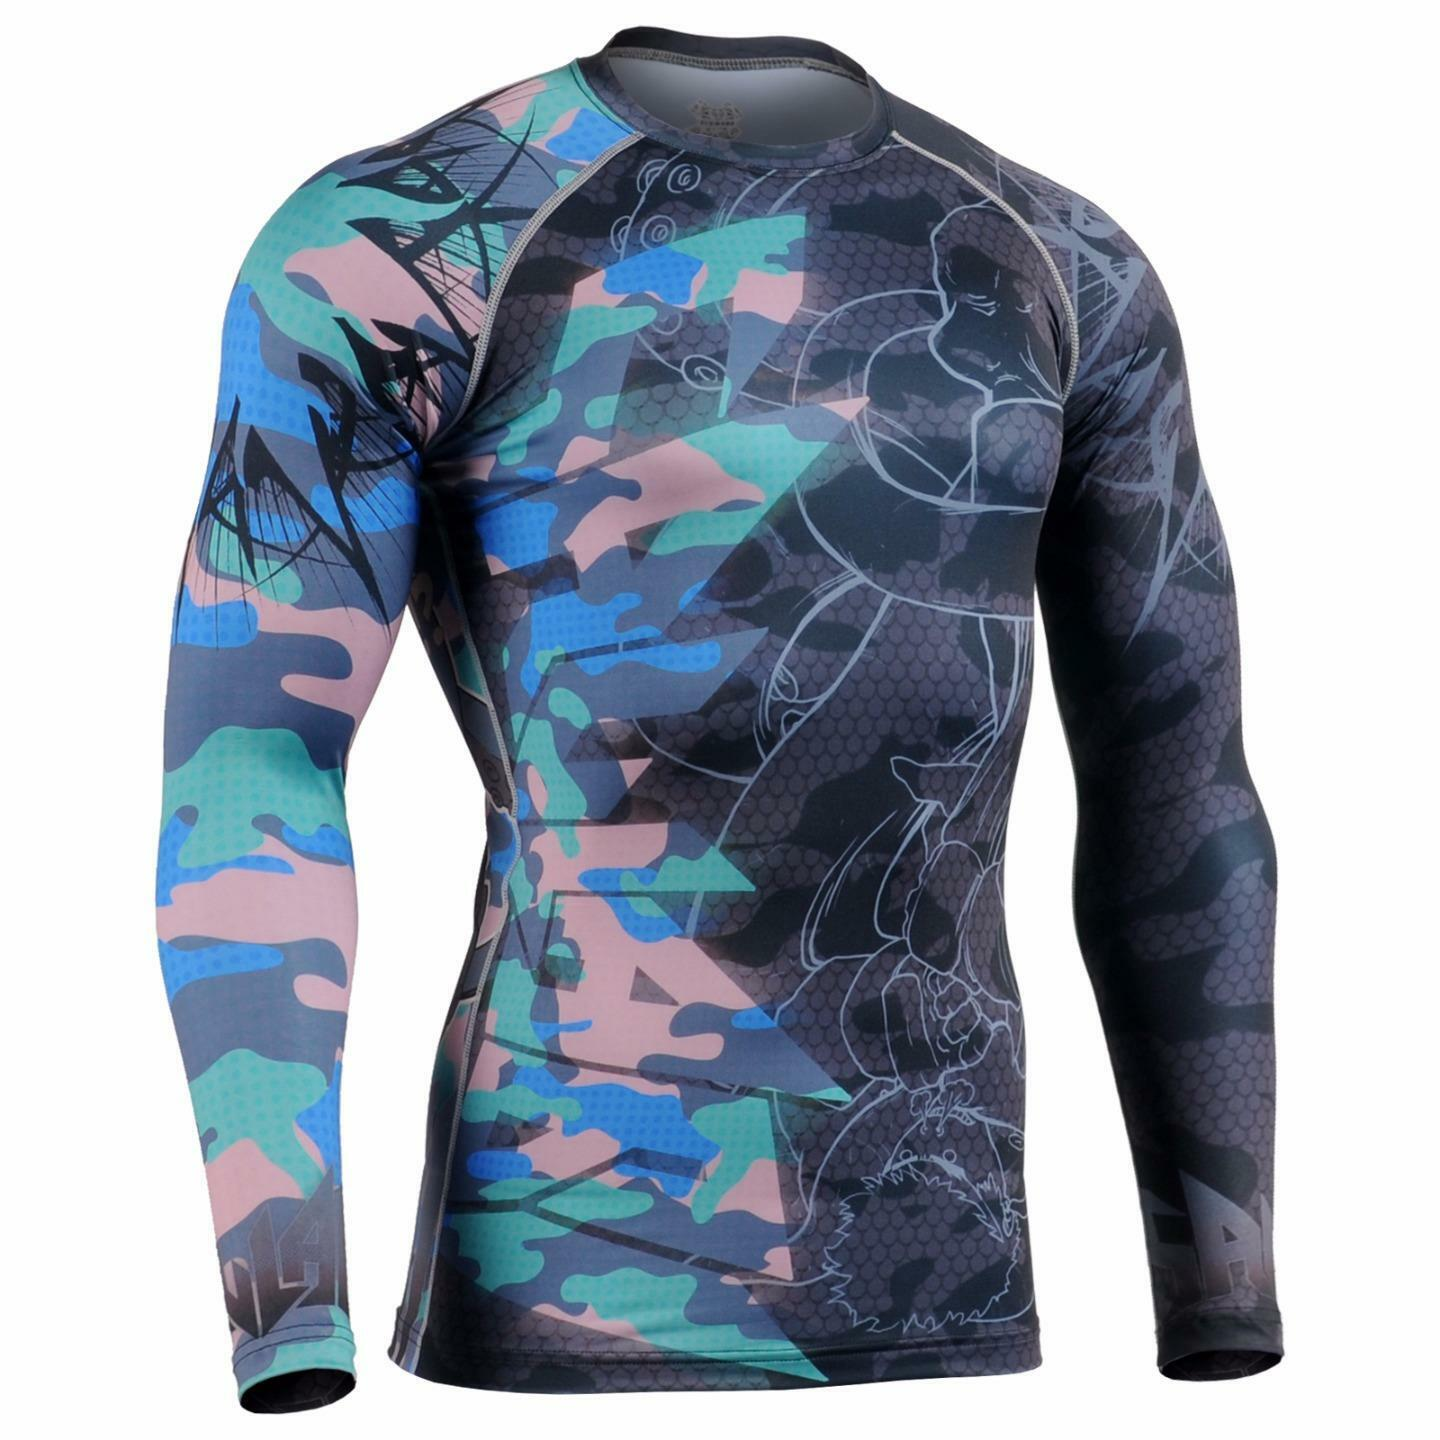 FIXGEAR CFL-H5C Compression Base Layer Shirt Sportswear Bodybuilding Workout GYM